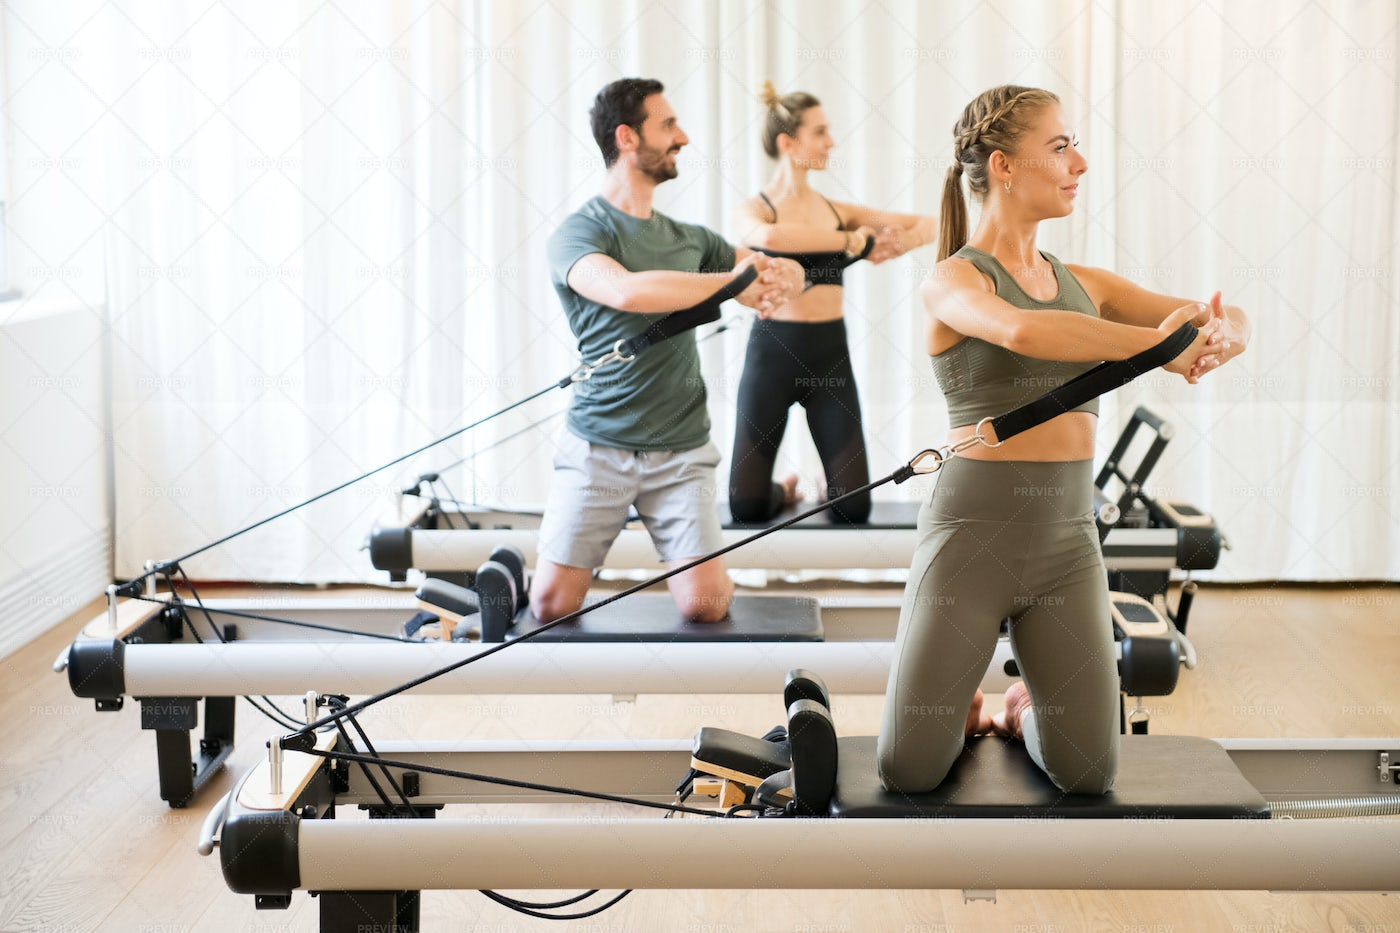 Exercising With Reformer Beds: Stock Photos